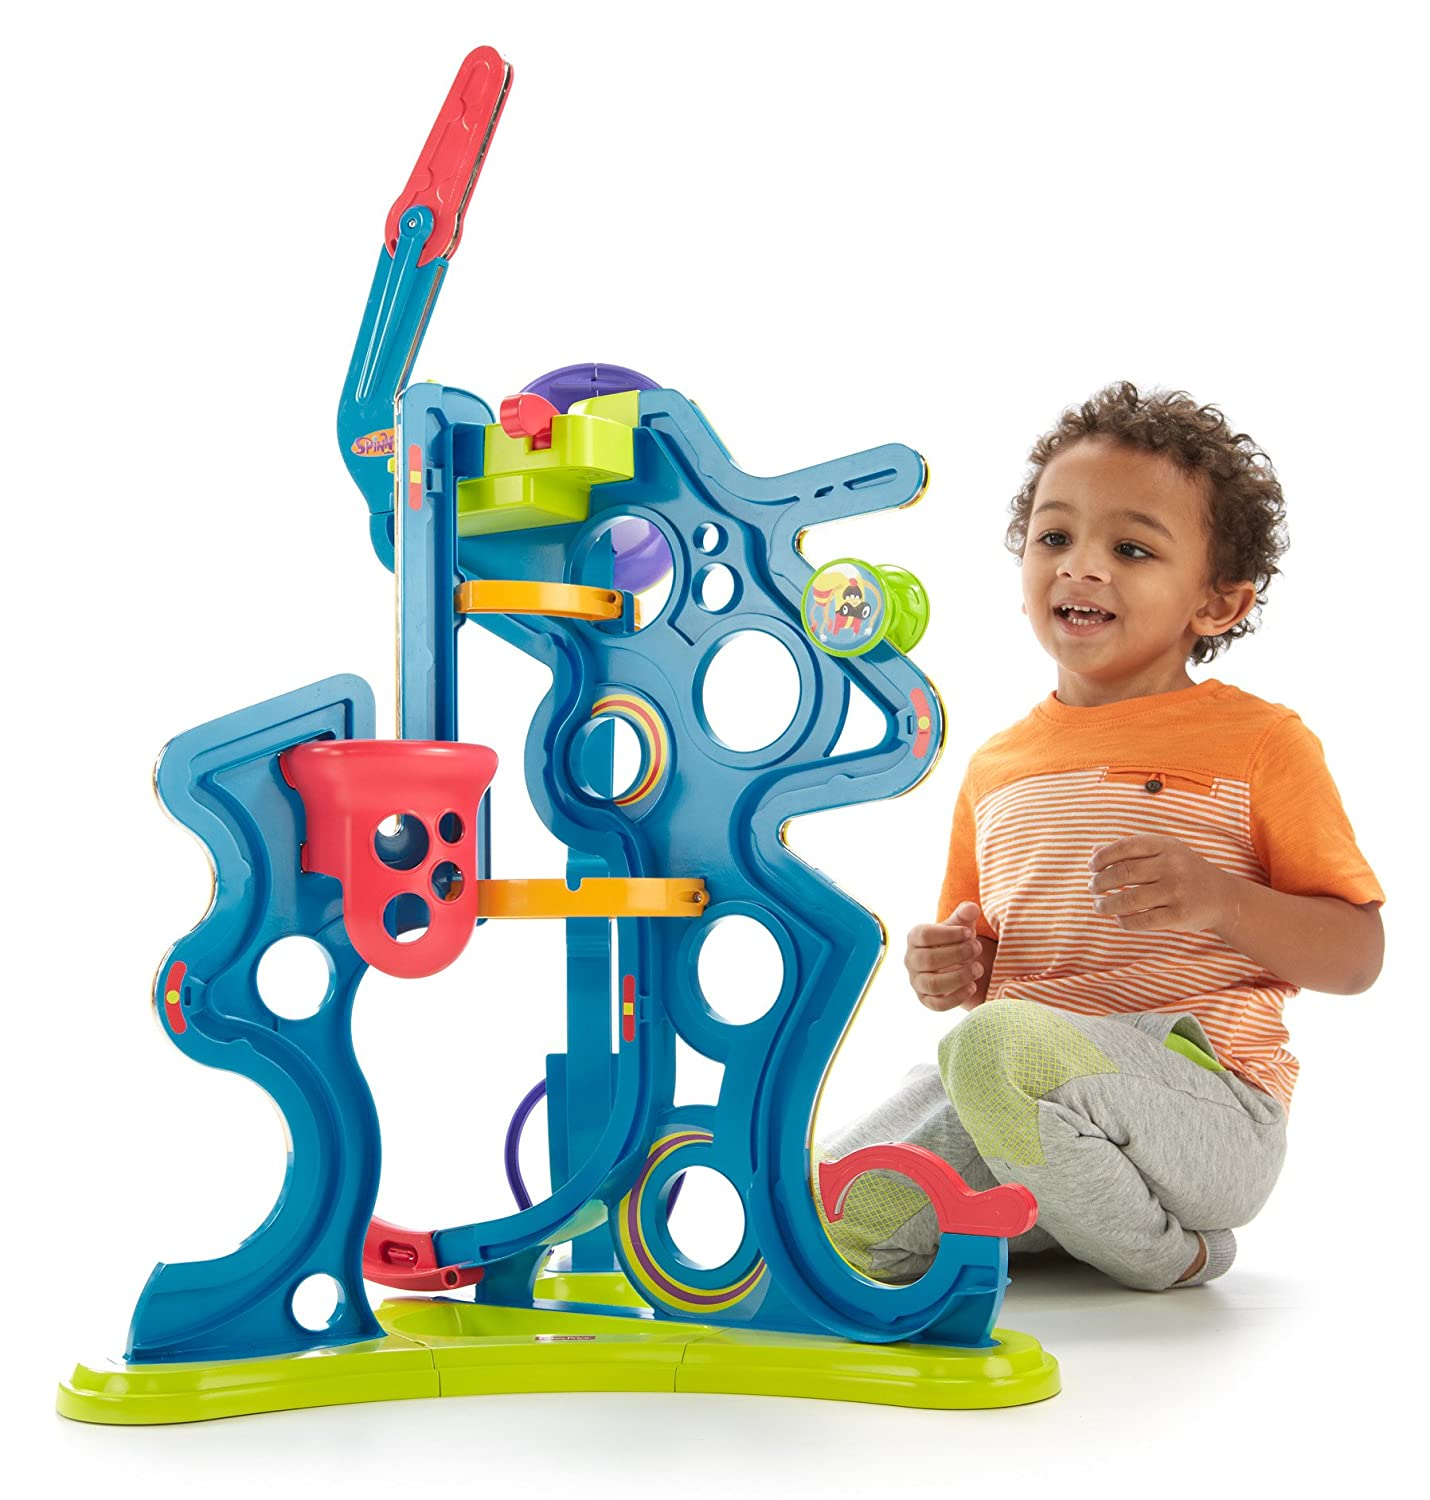 Toys For 3 Year Boys : Best gifts for year old boys in itsy bitsy fun